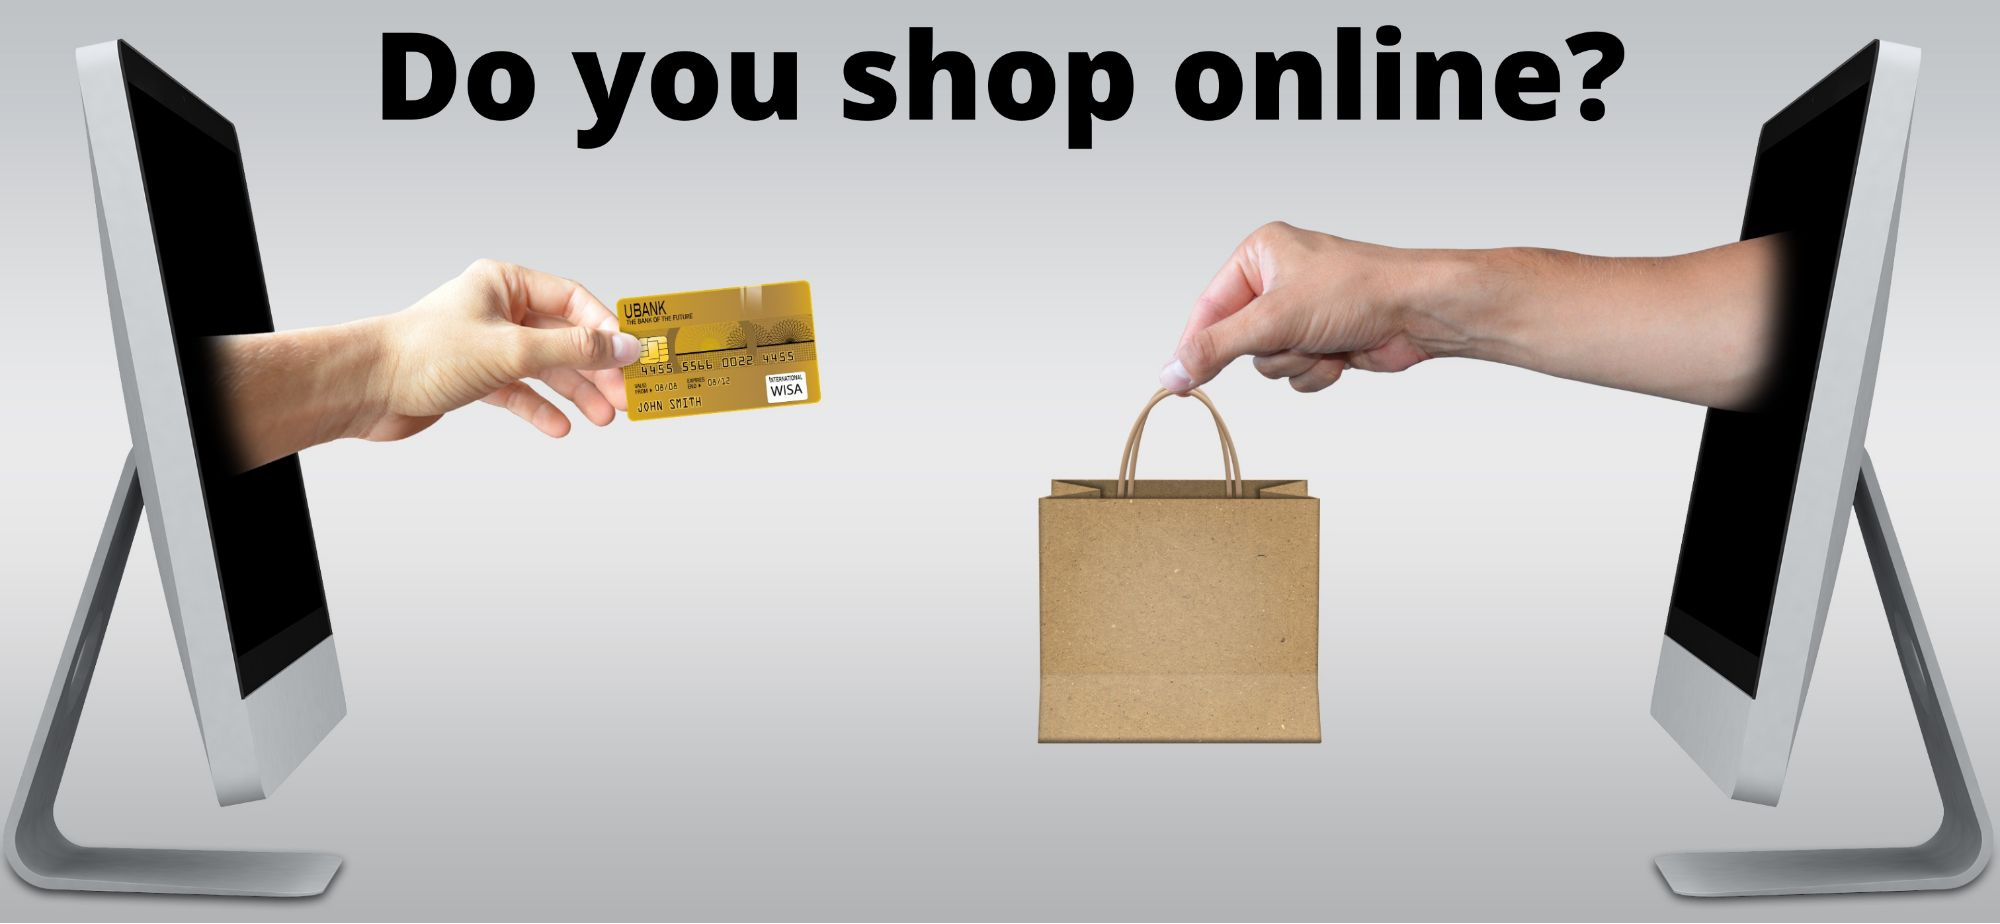 Do you shop online